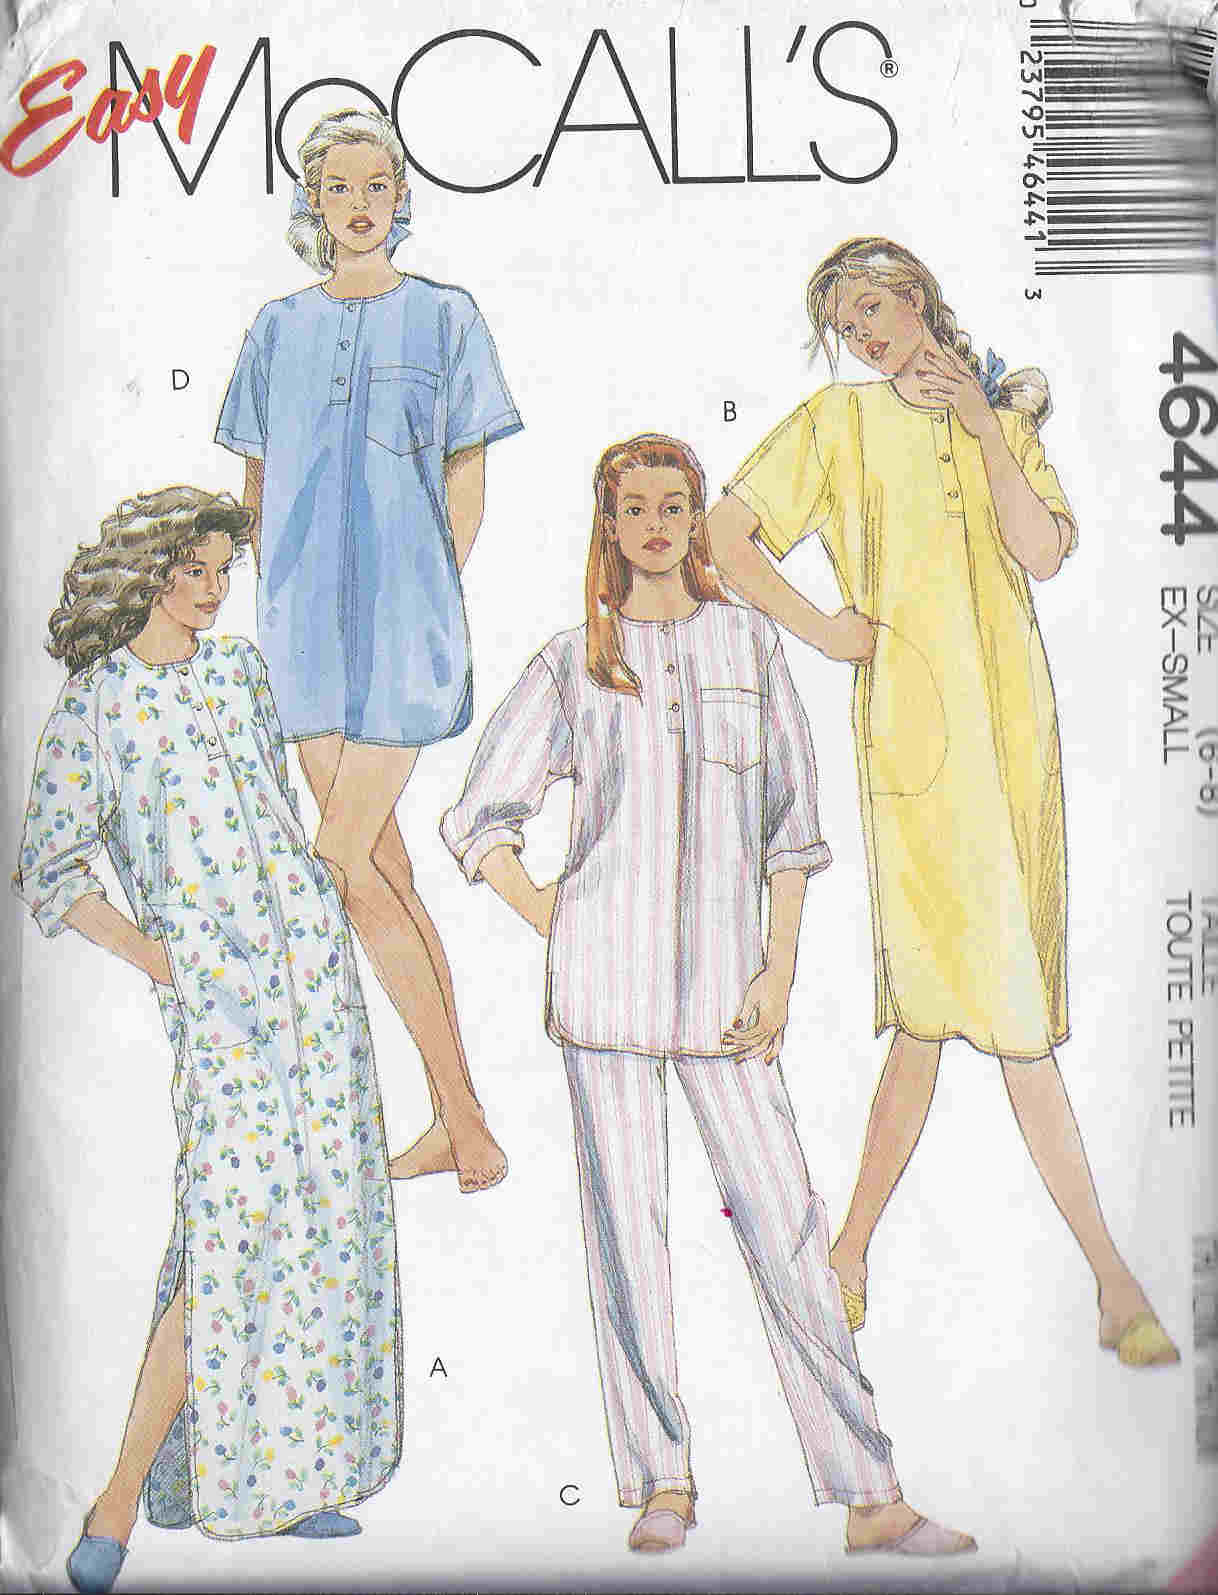 Nightgown Nightshirt Pajamas Slippers